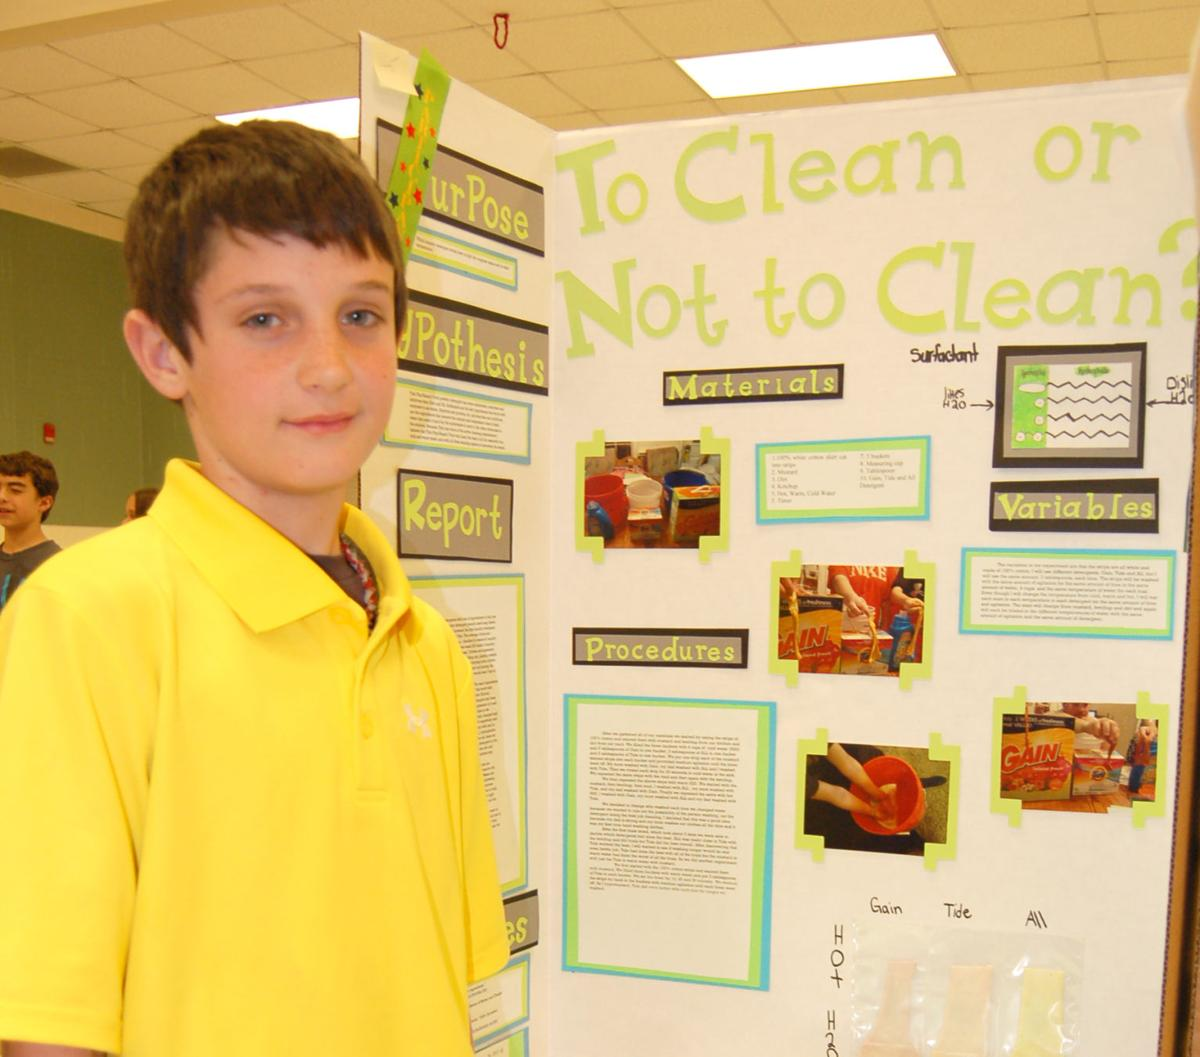 laundry detergent science fair project This guide can help find elementary school science fair project ideas appropriate for the kindergarten  is laundry detergent as effective if you use less than the.